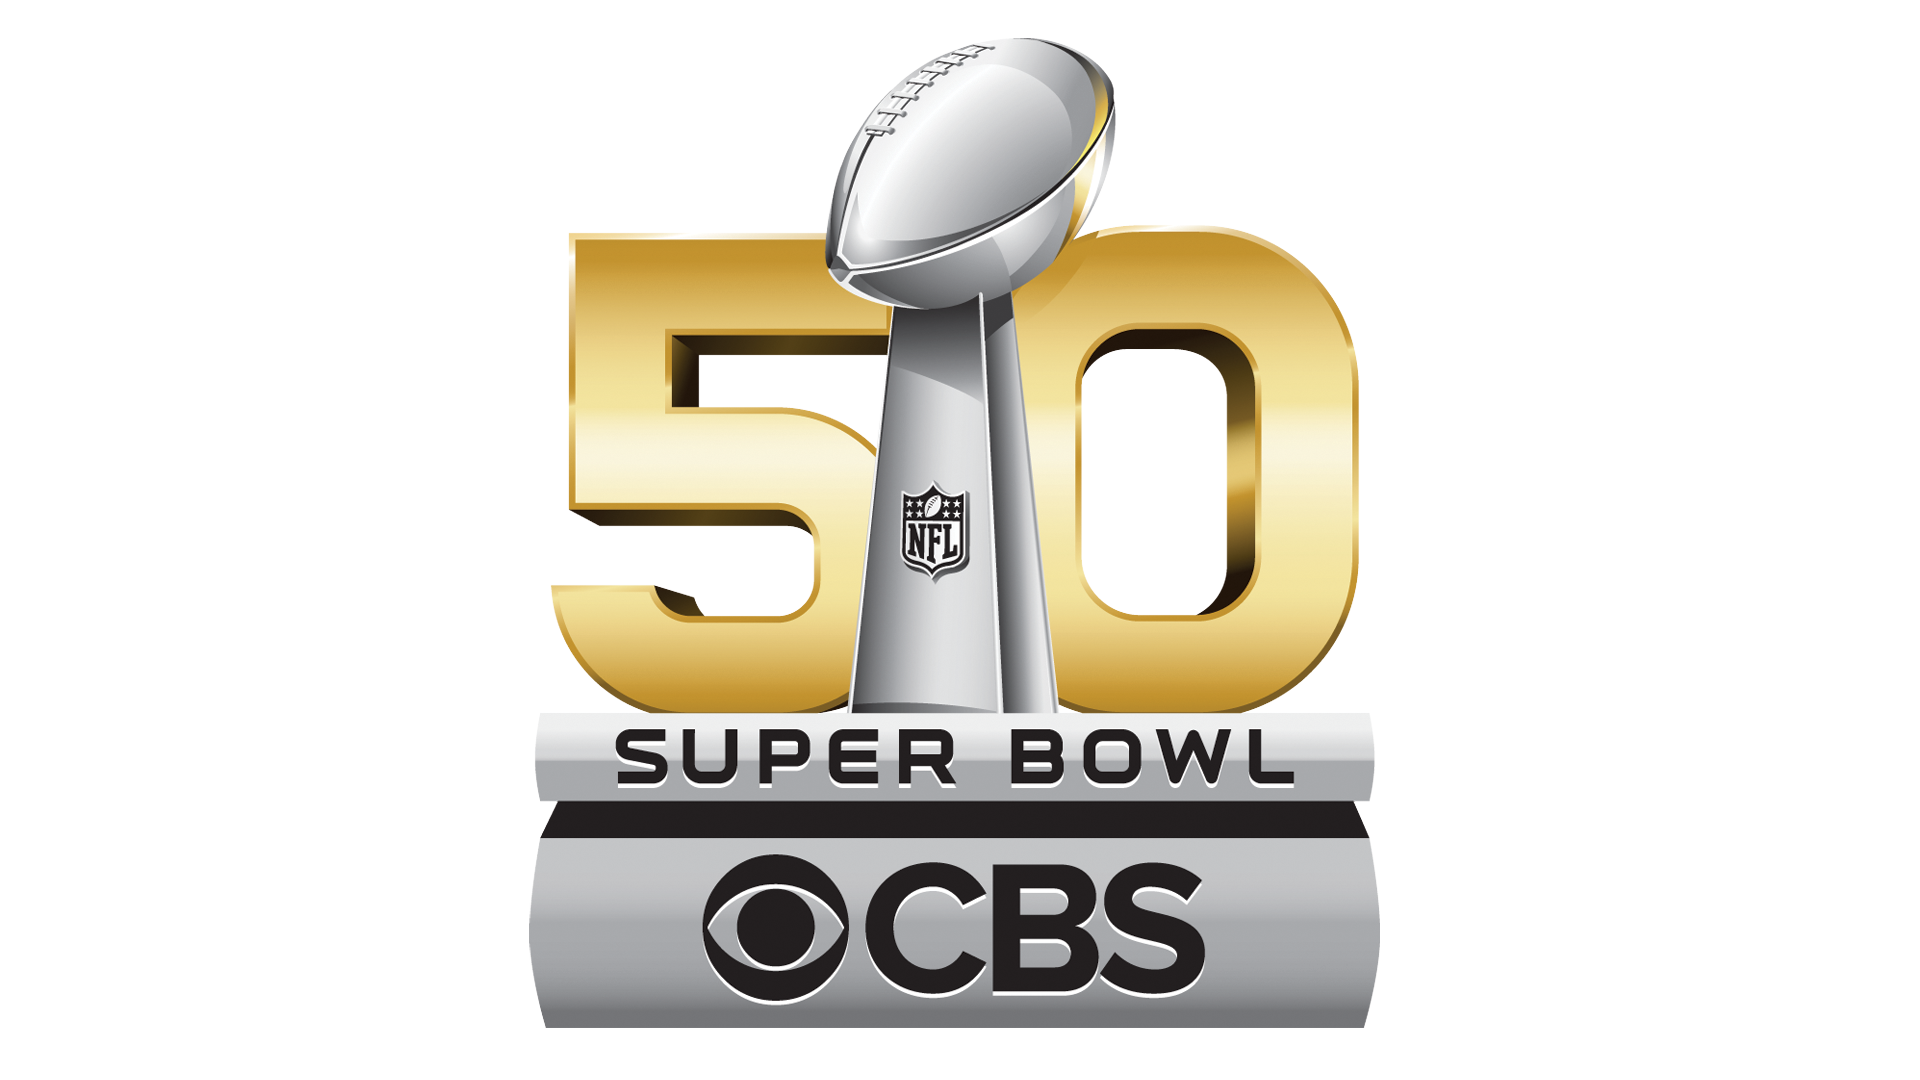 CBS will air 7 hours of pregame programming on Super Bowl Sunday.